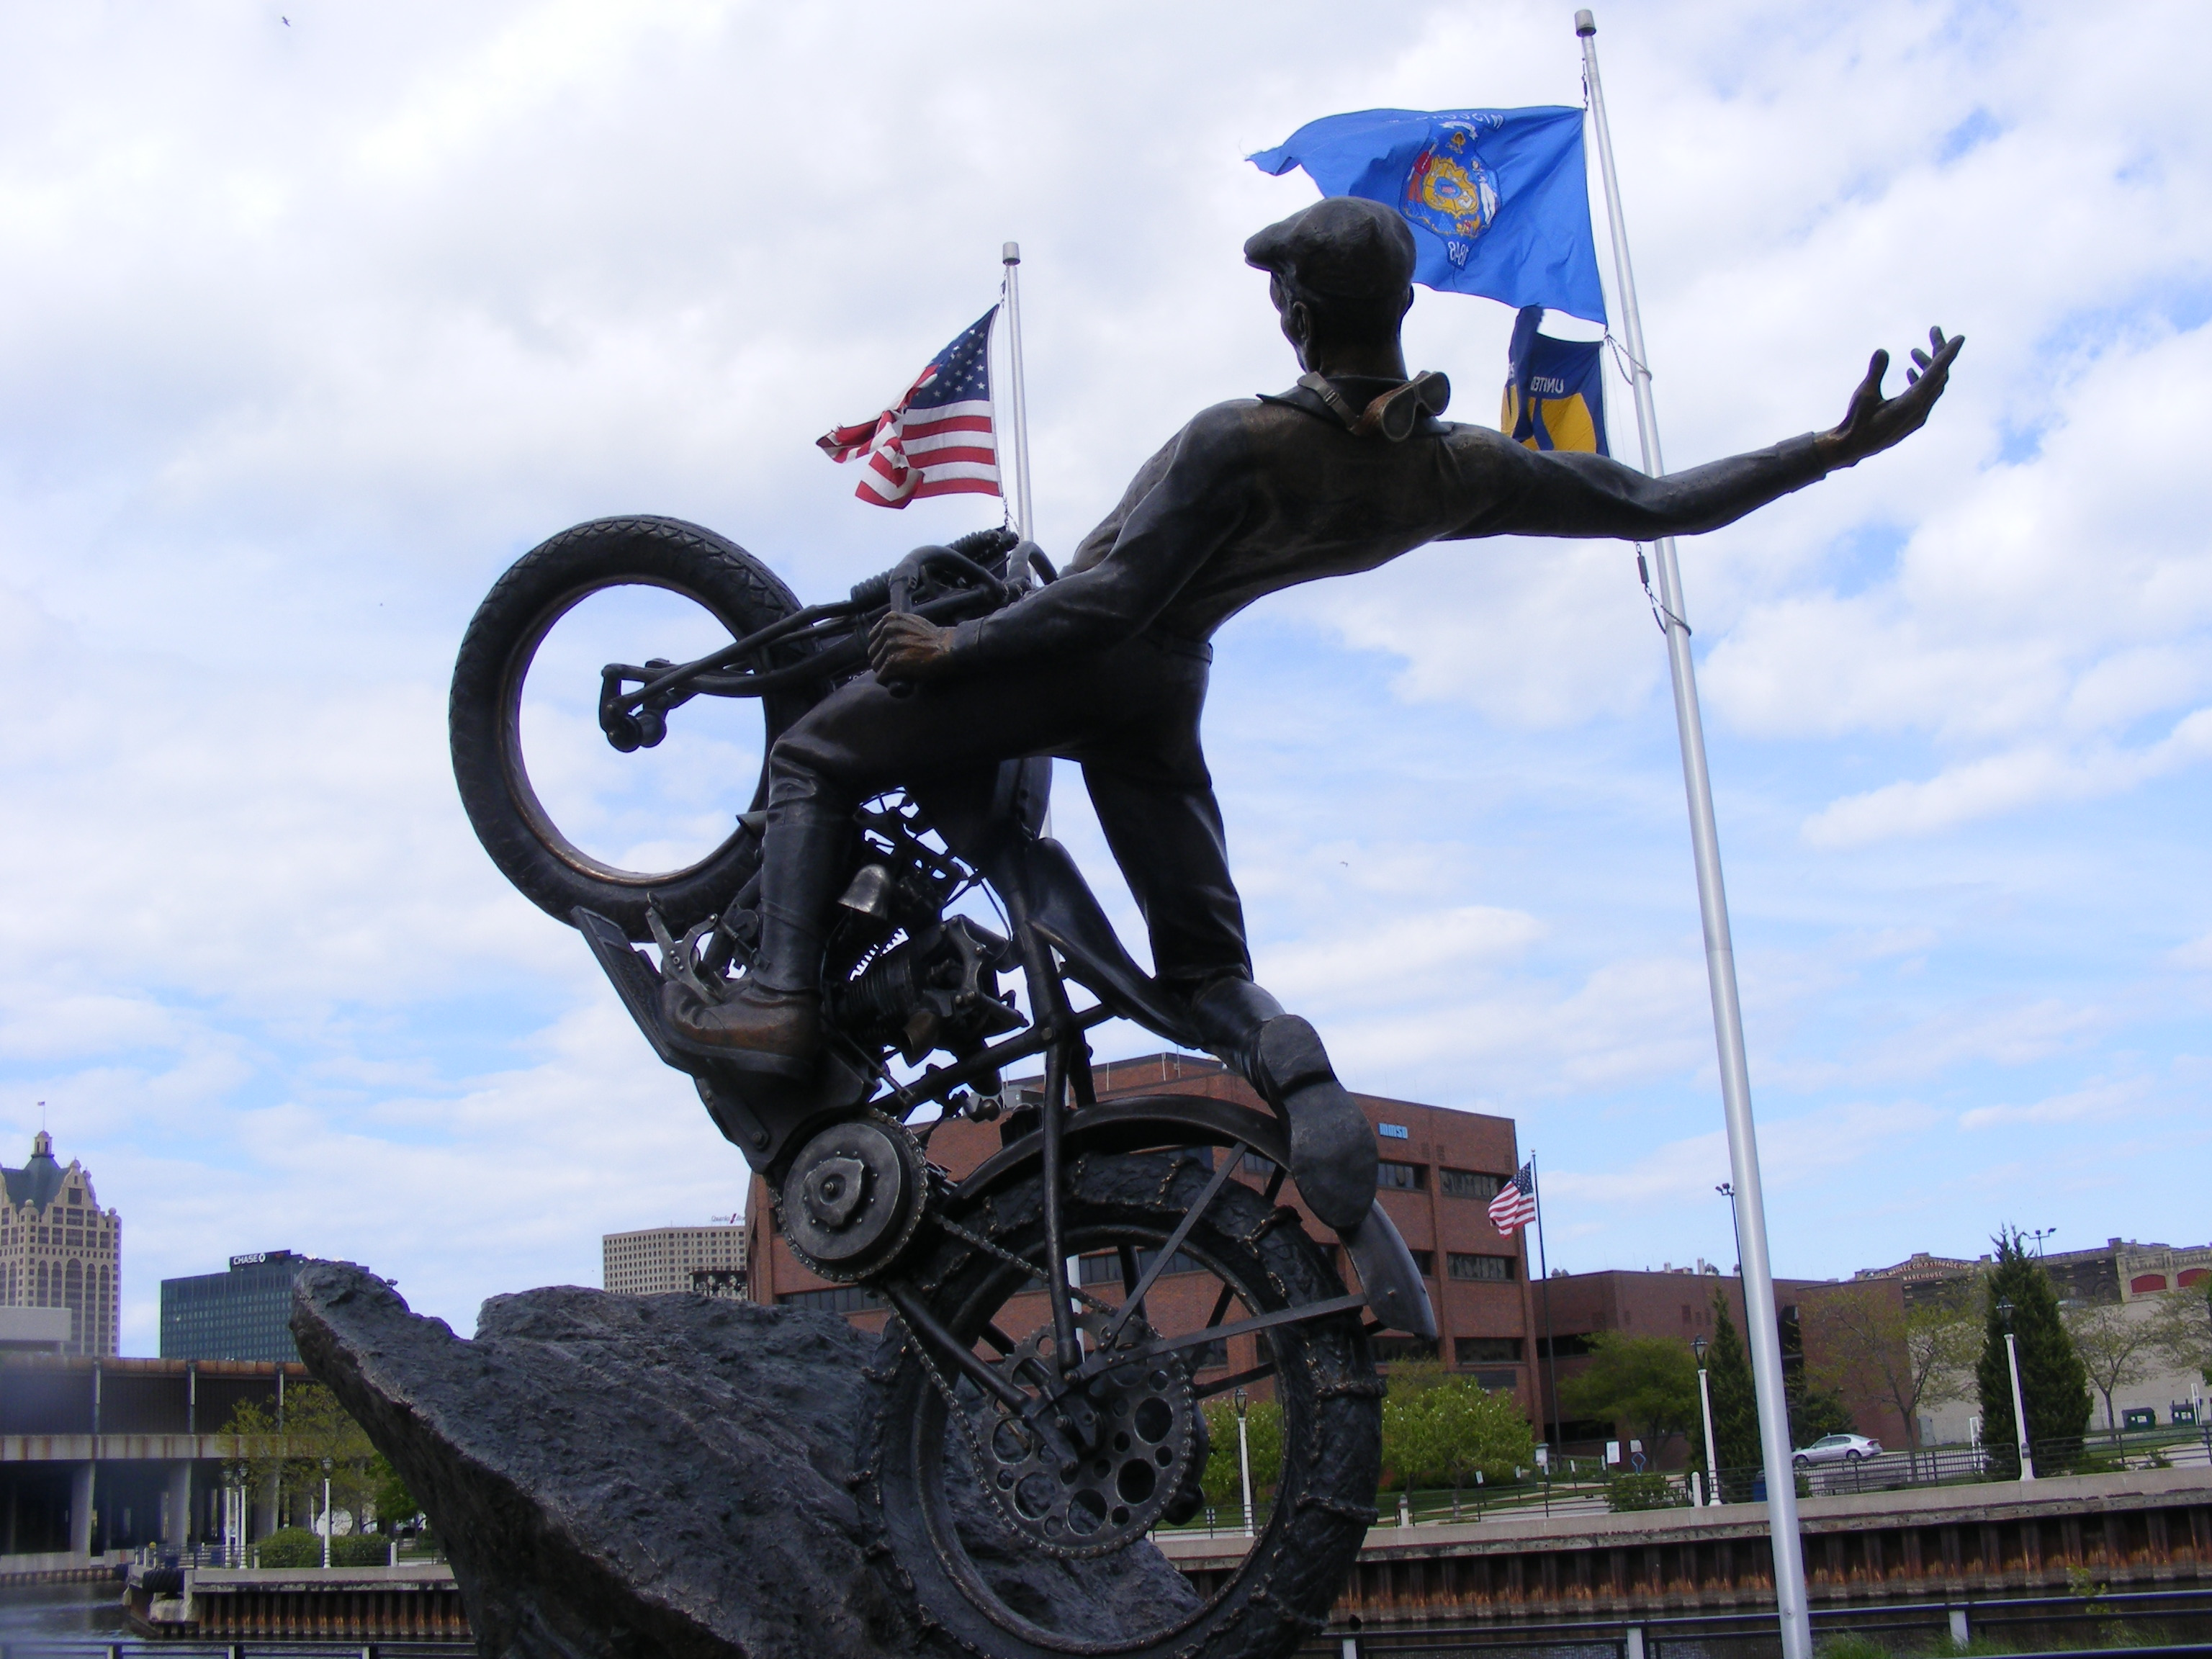 Click image for larger version  Name:Harley Musium 136.jpg Views:79 Size:1.11 MB ID:66668